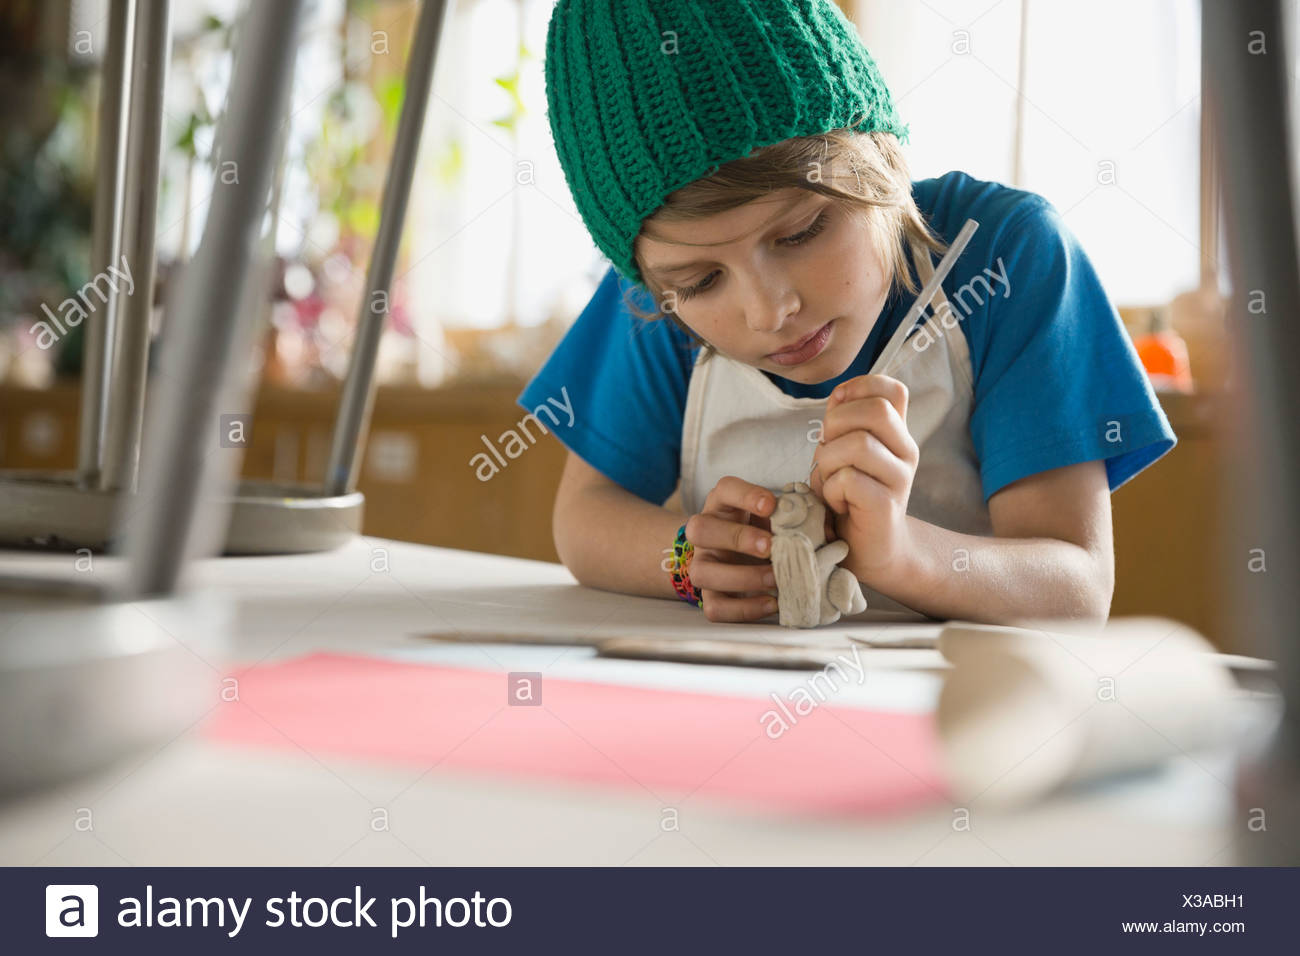 Boy making clay figurine in art class Stock Photo